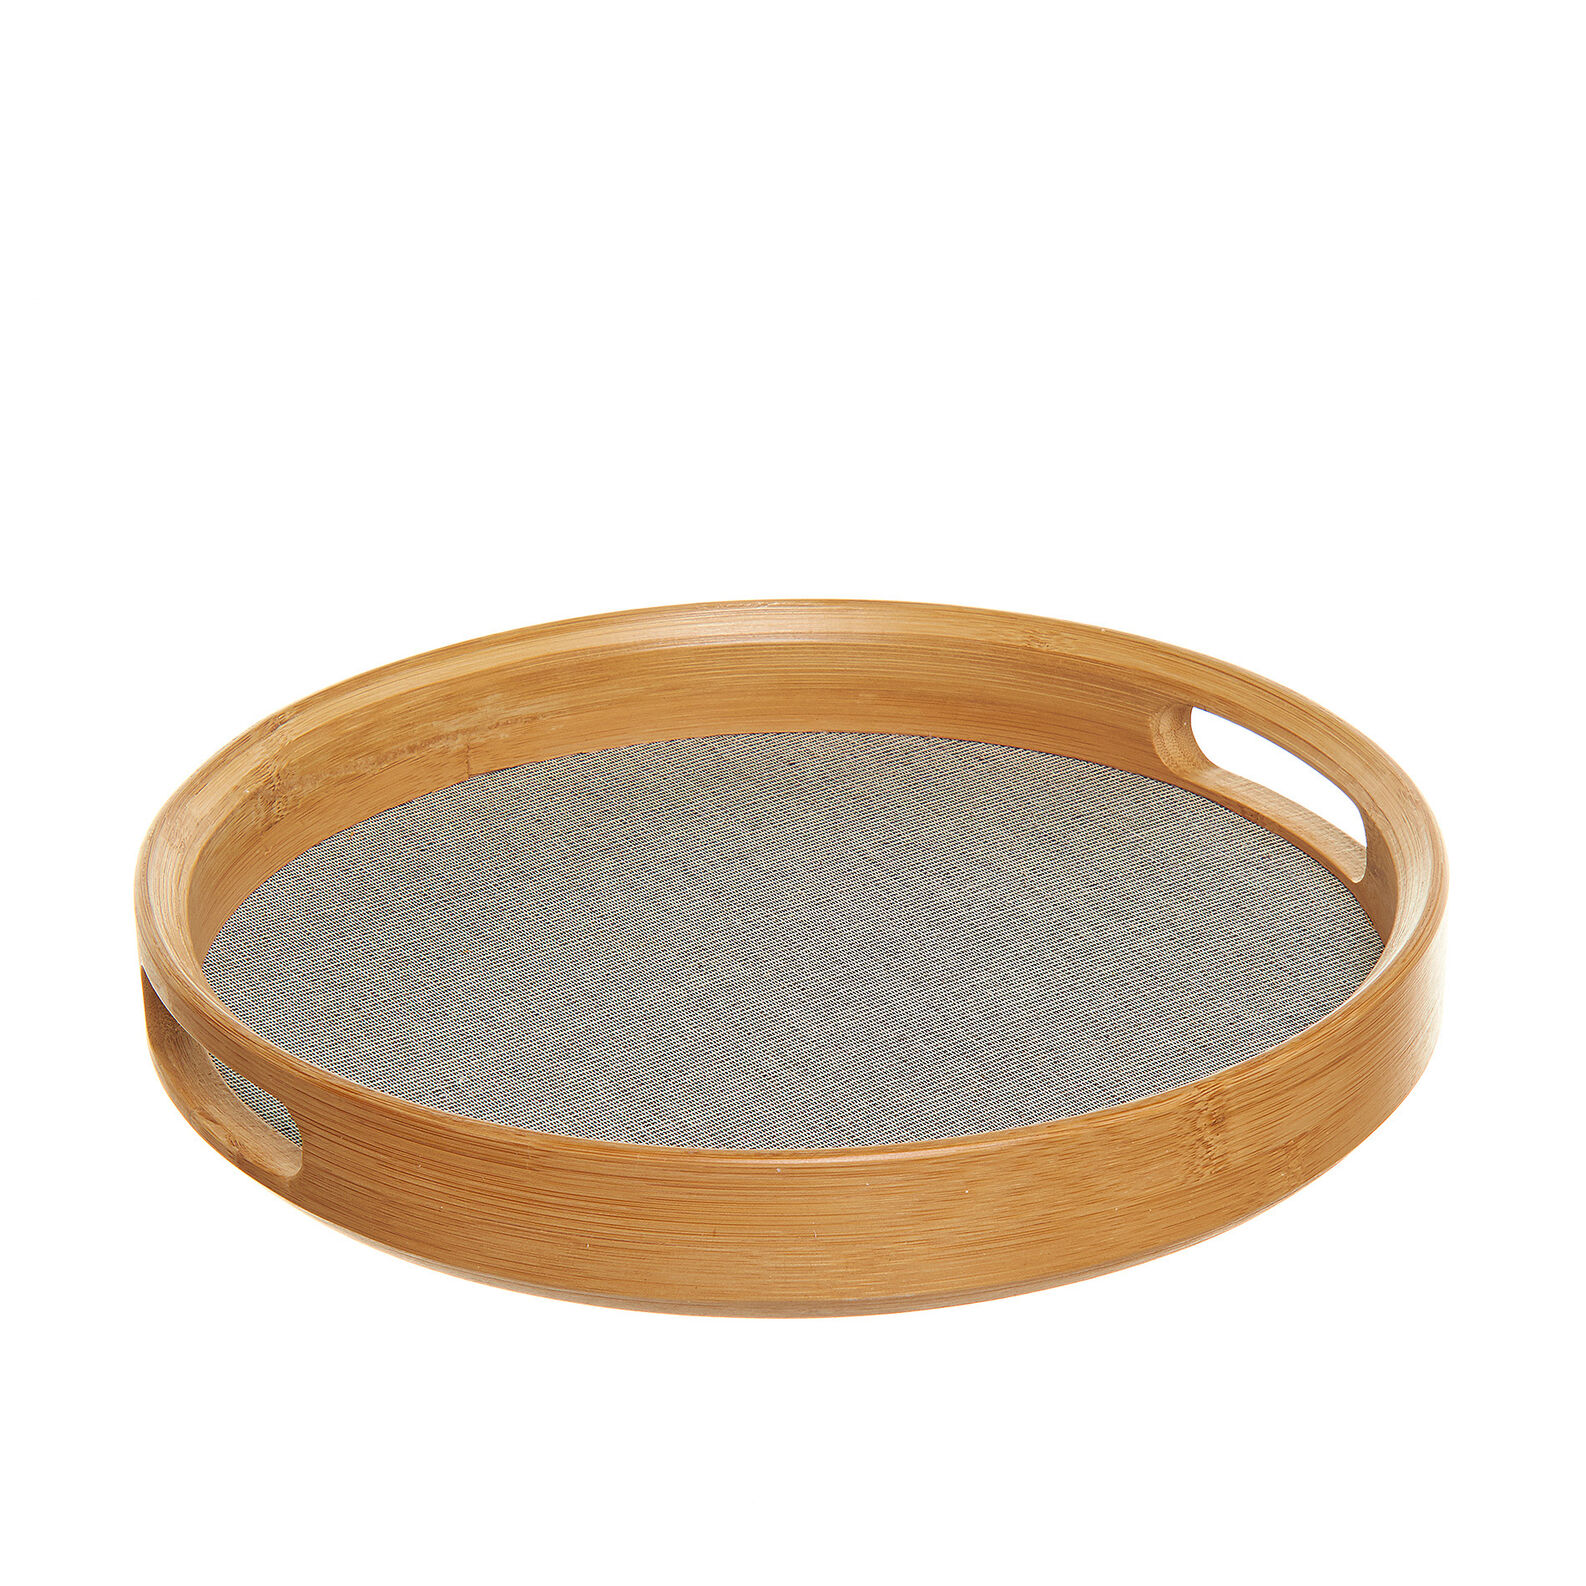 Round tray in cotton and bamboo